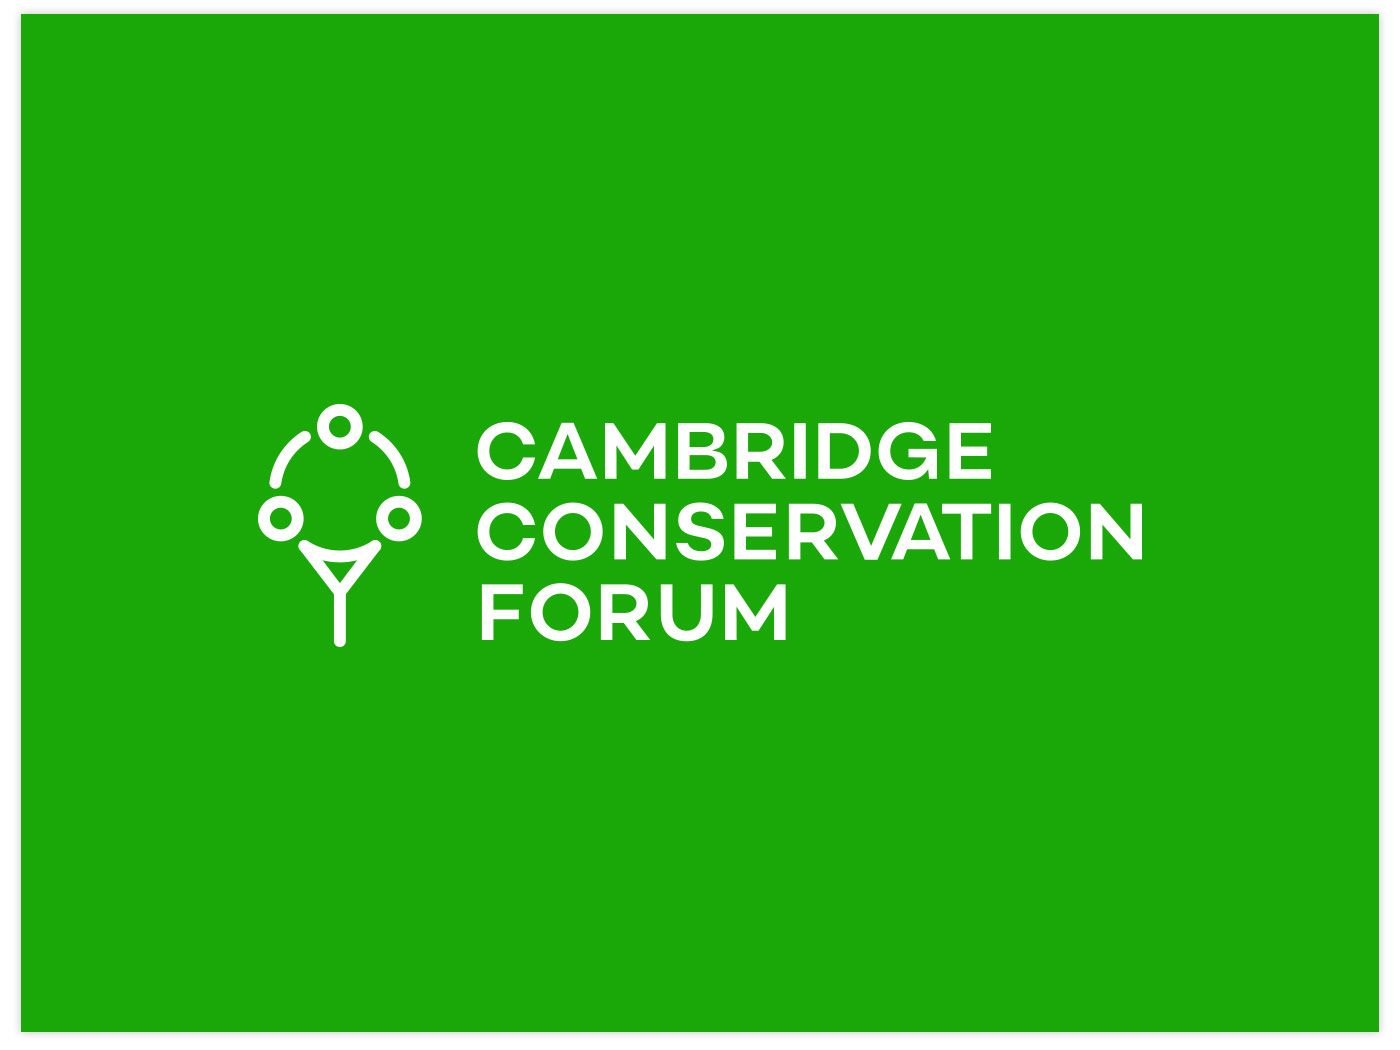 Cambridge Conservation Forum bespoke brand design, by Chiara Mensa